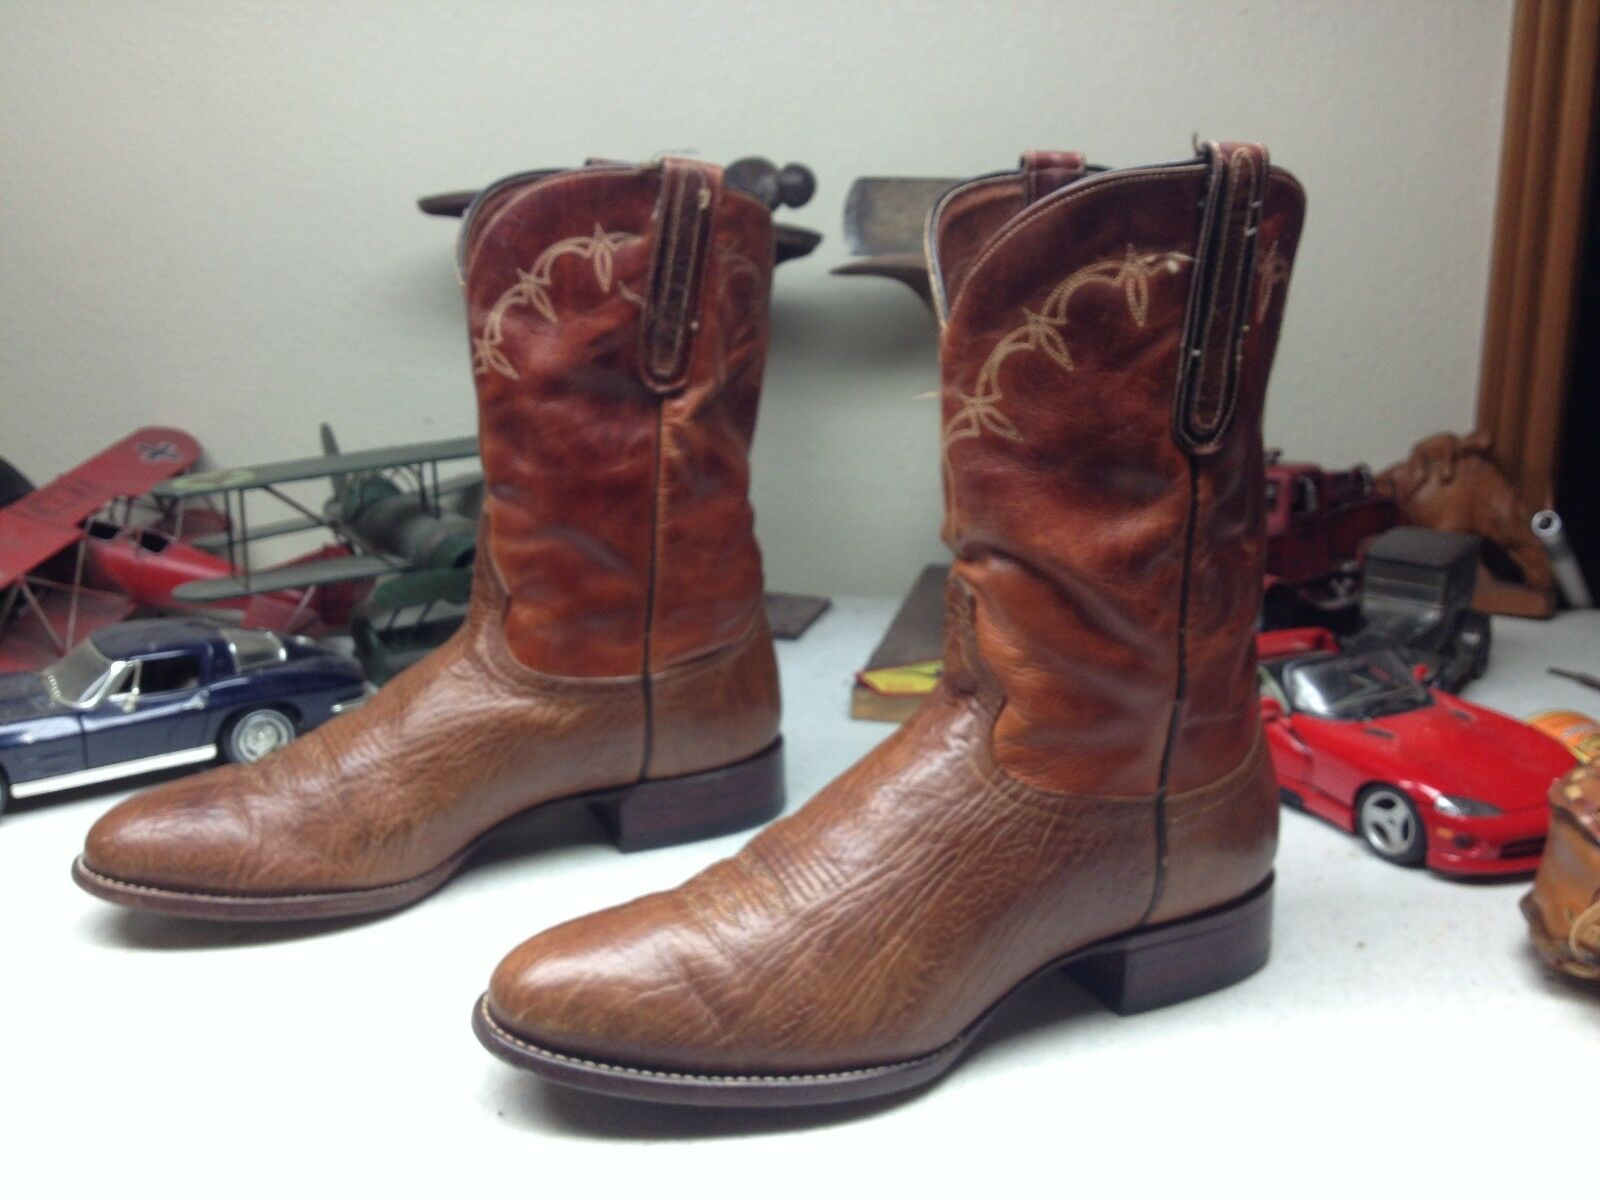 DISTRESSED MADE IN USA VINTAGE COGNAC LEATHER LARRY MAHAN ENGINEER BOOTS 10.5 D